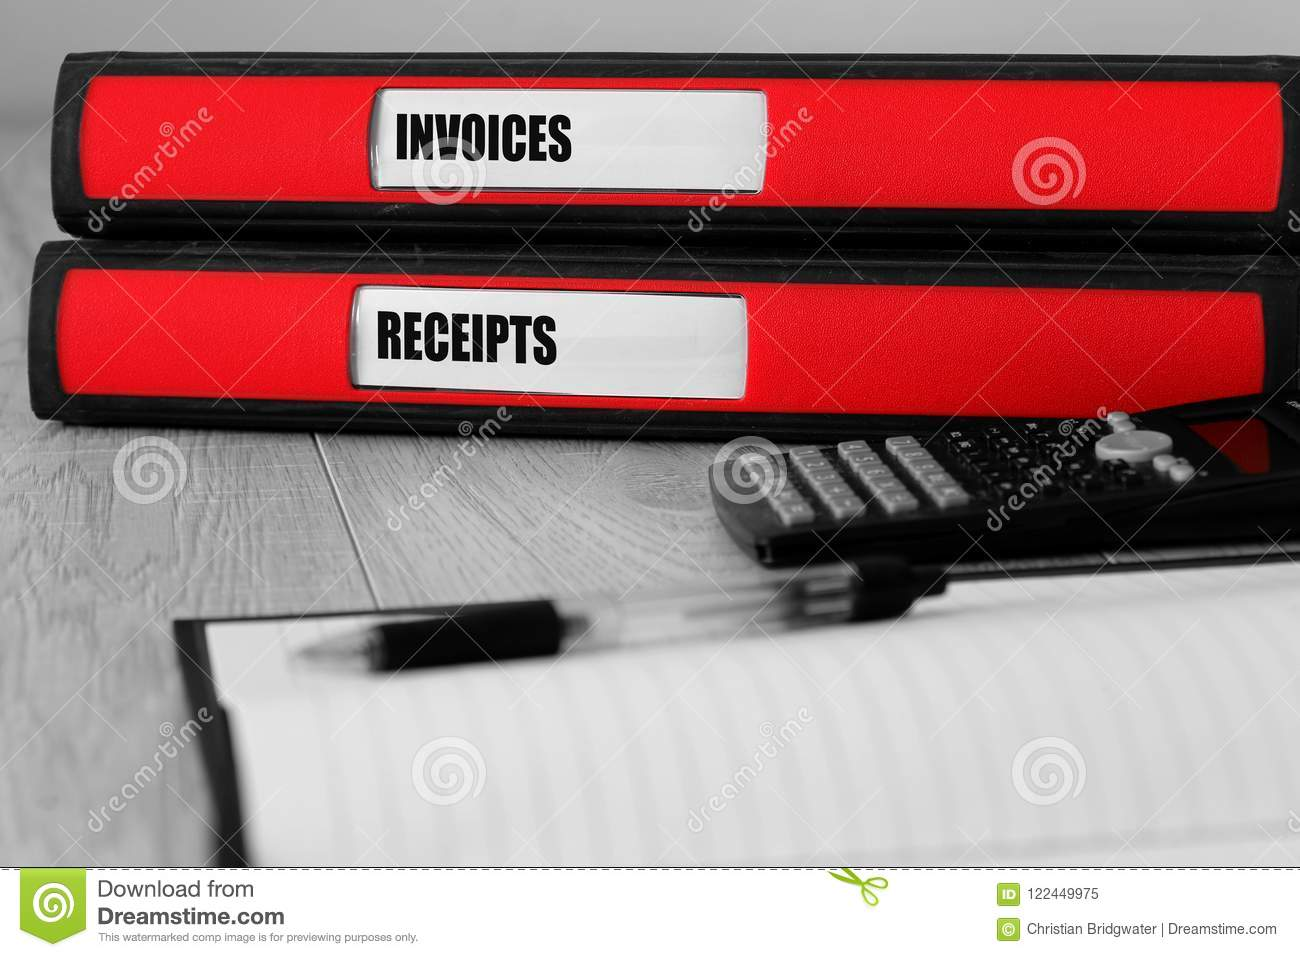 red folders with invoices and receipts written on the label on a